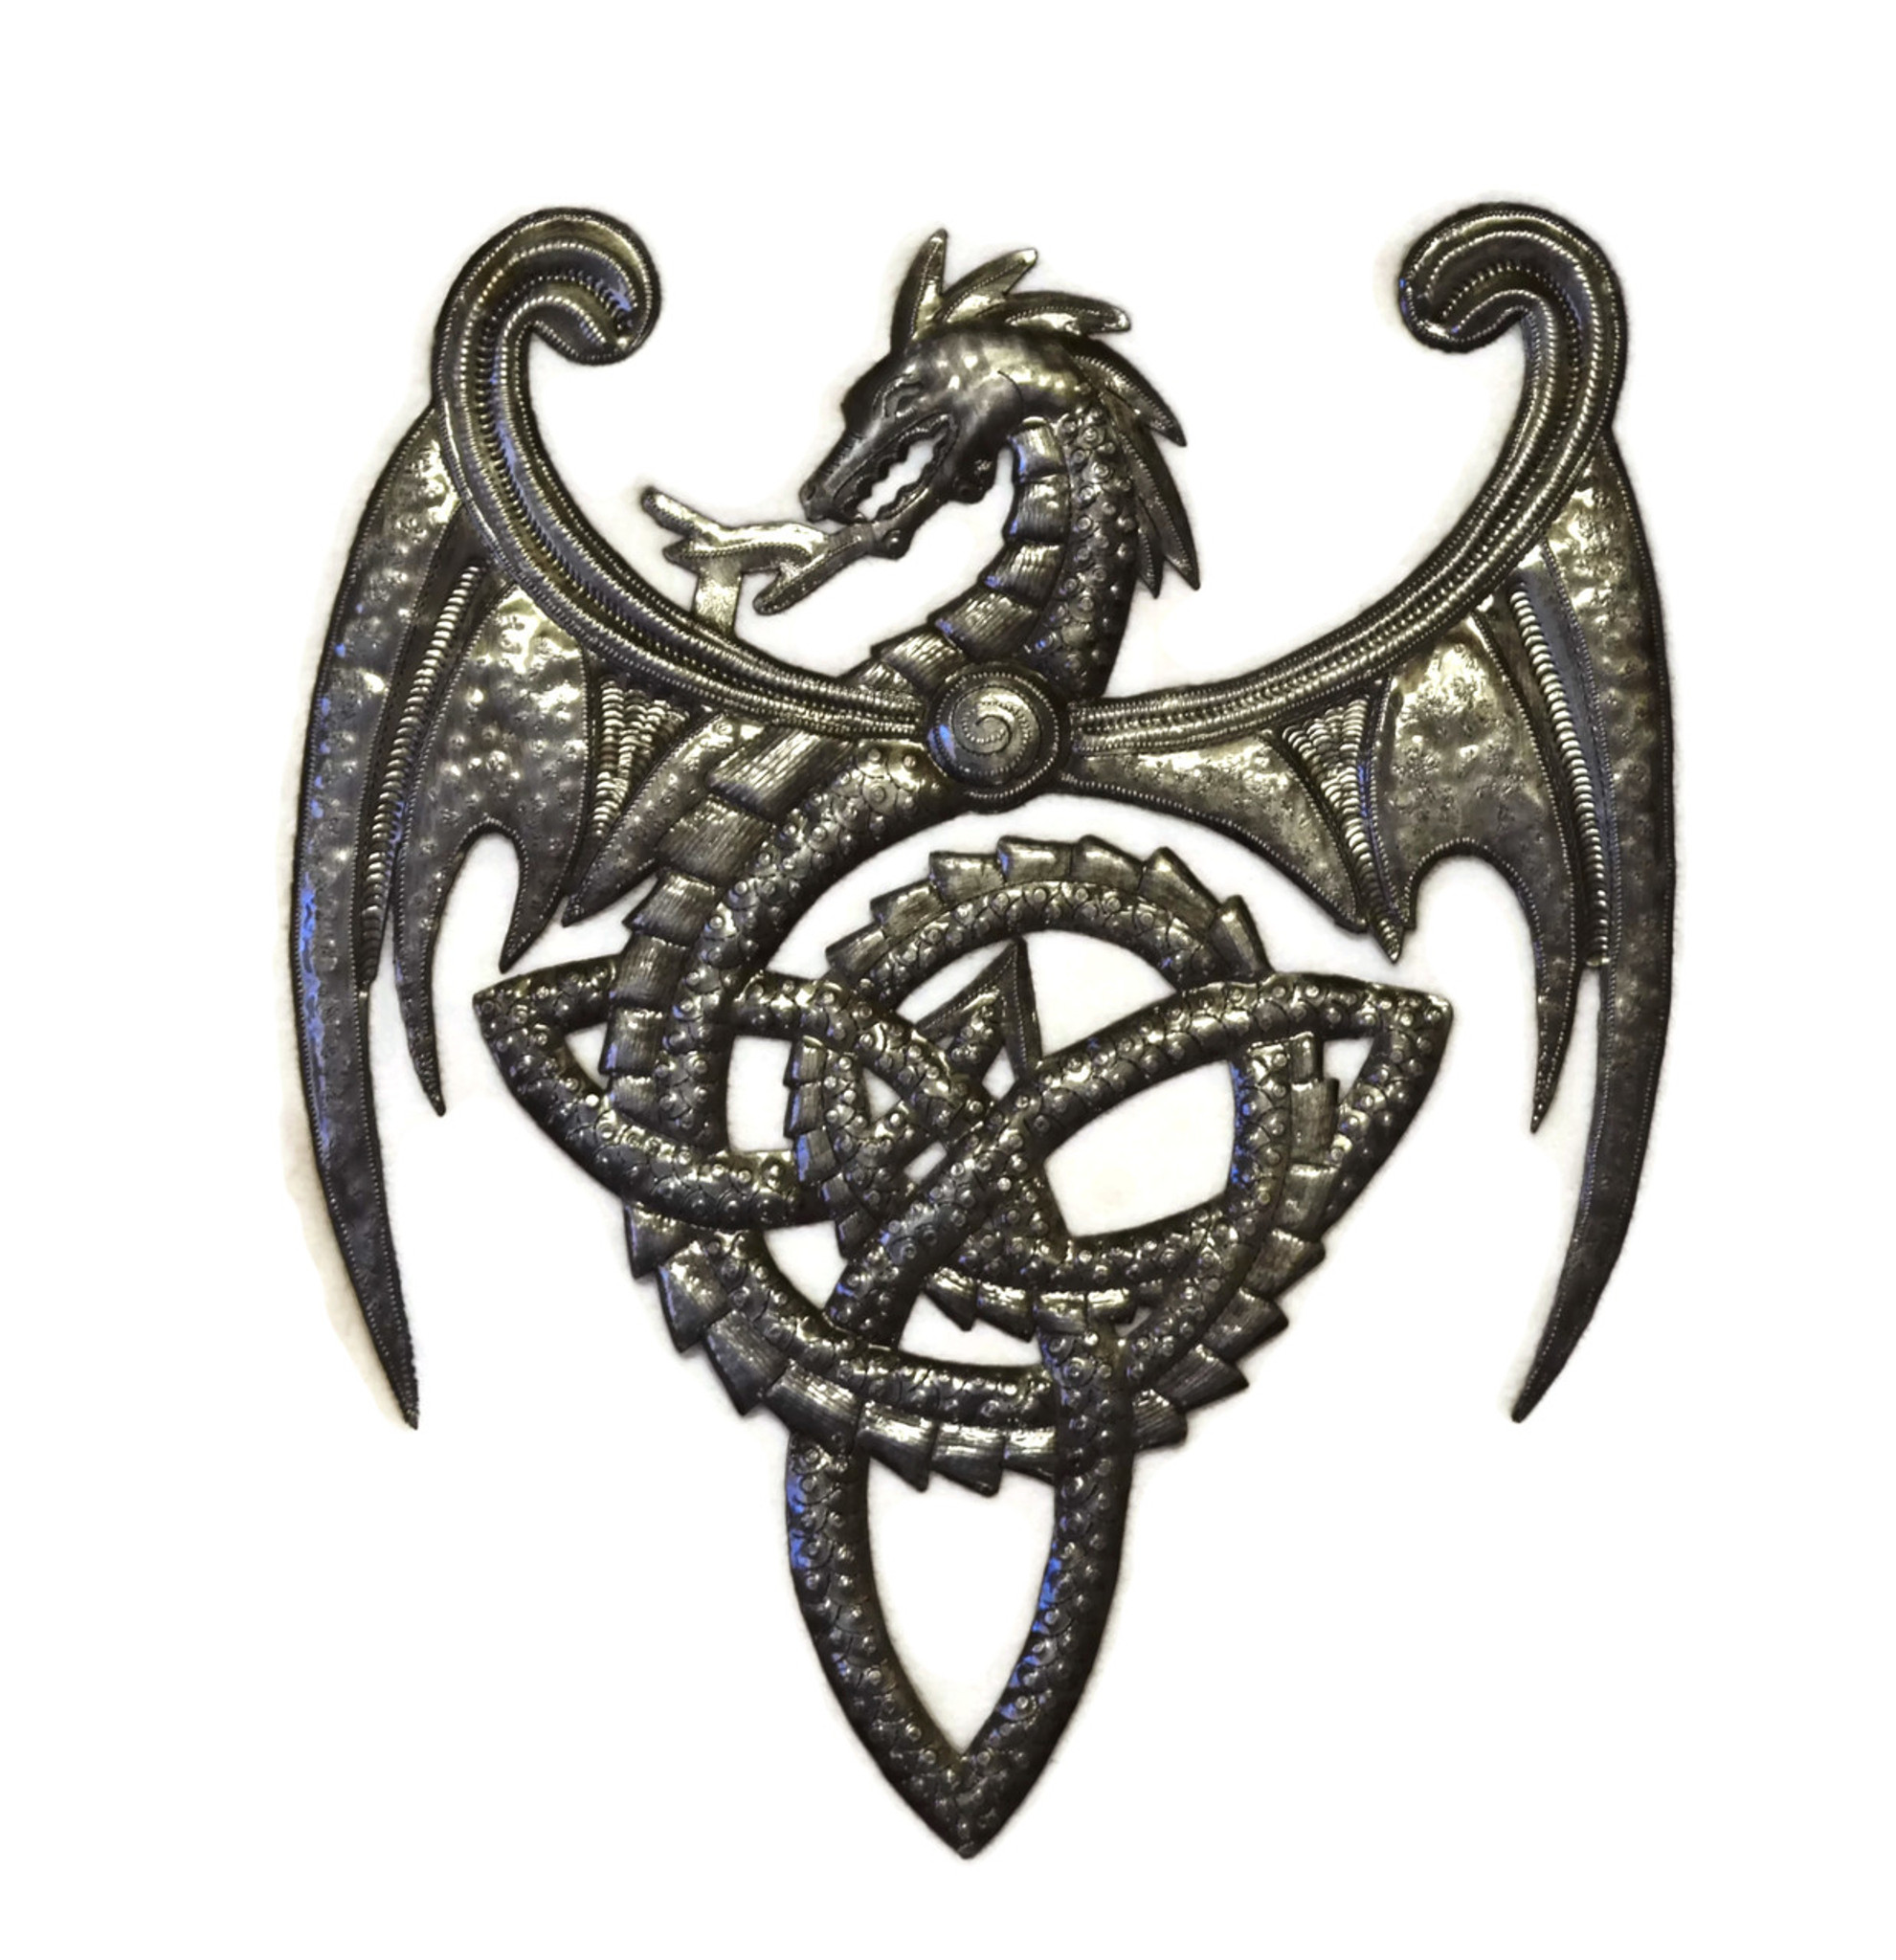 Metal Dragon Wall Artwork, Celtic Knot Symbol, Haitian Metal Art ...